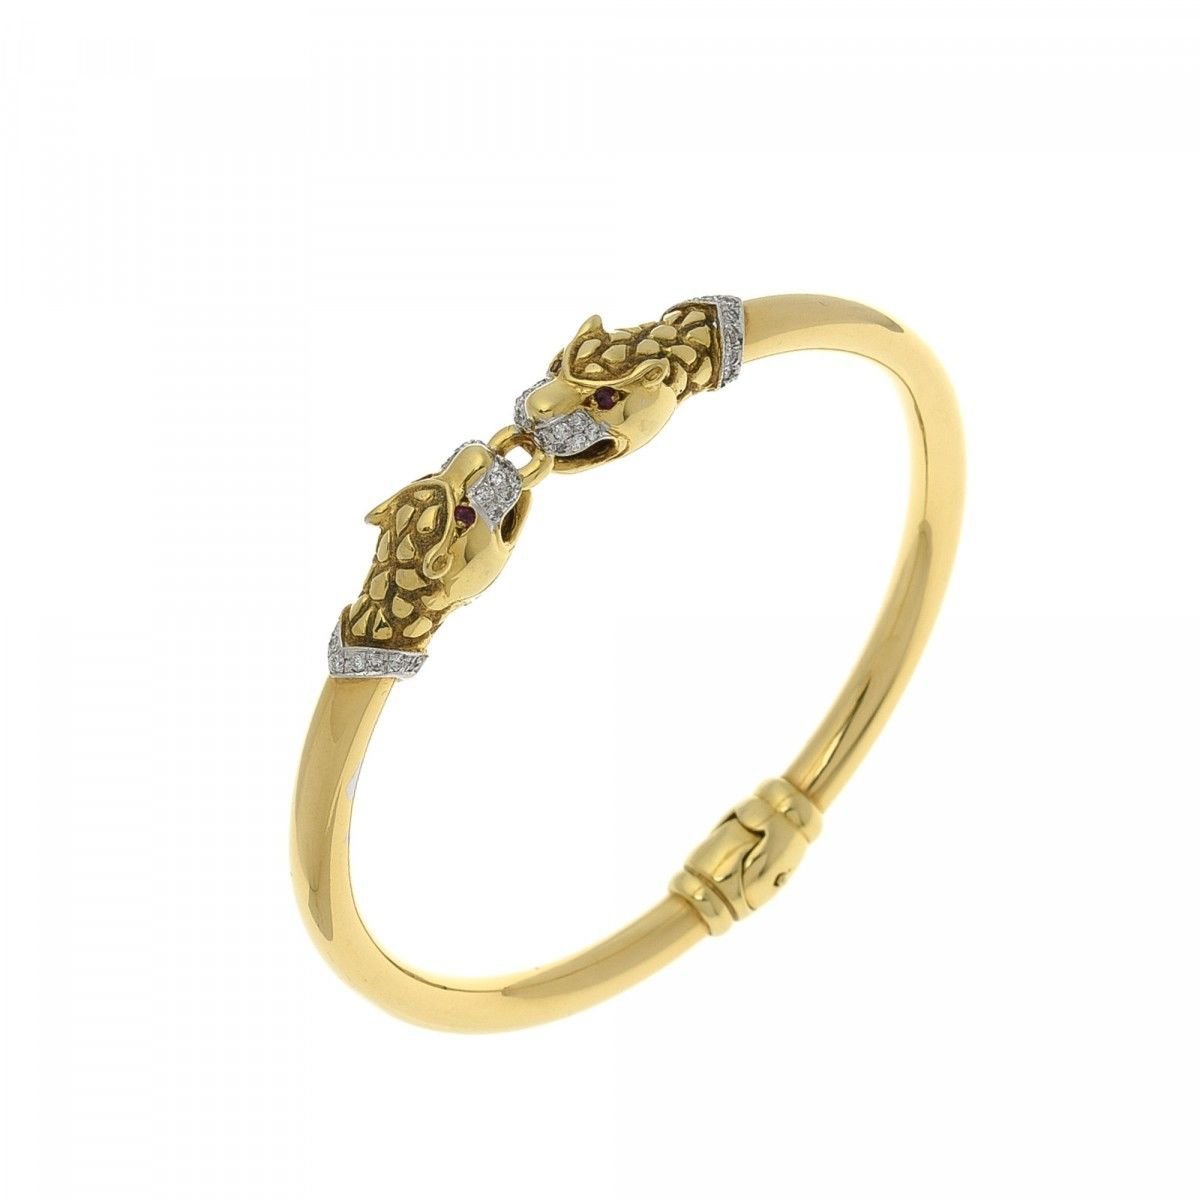 panther bracelet gold sterling silver iced out cz products genuine